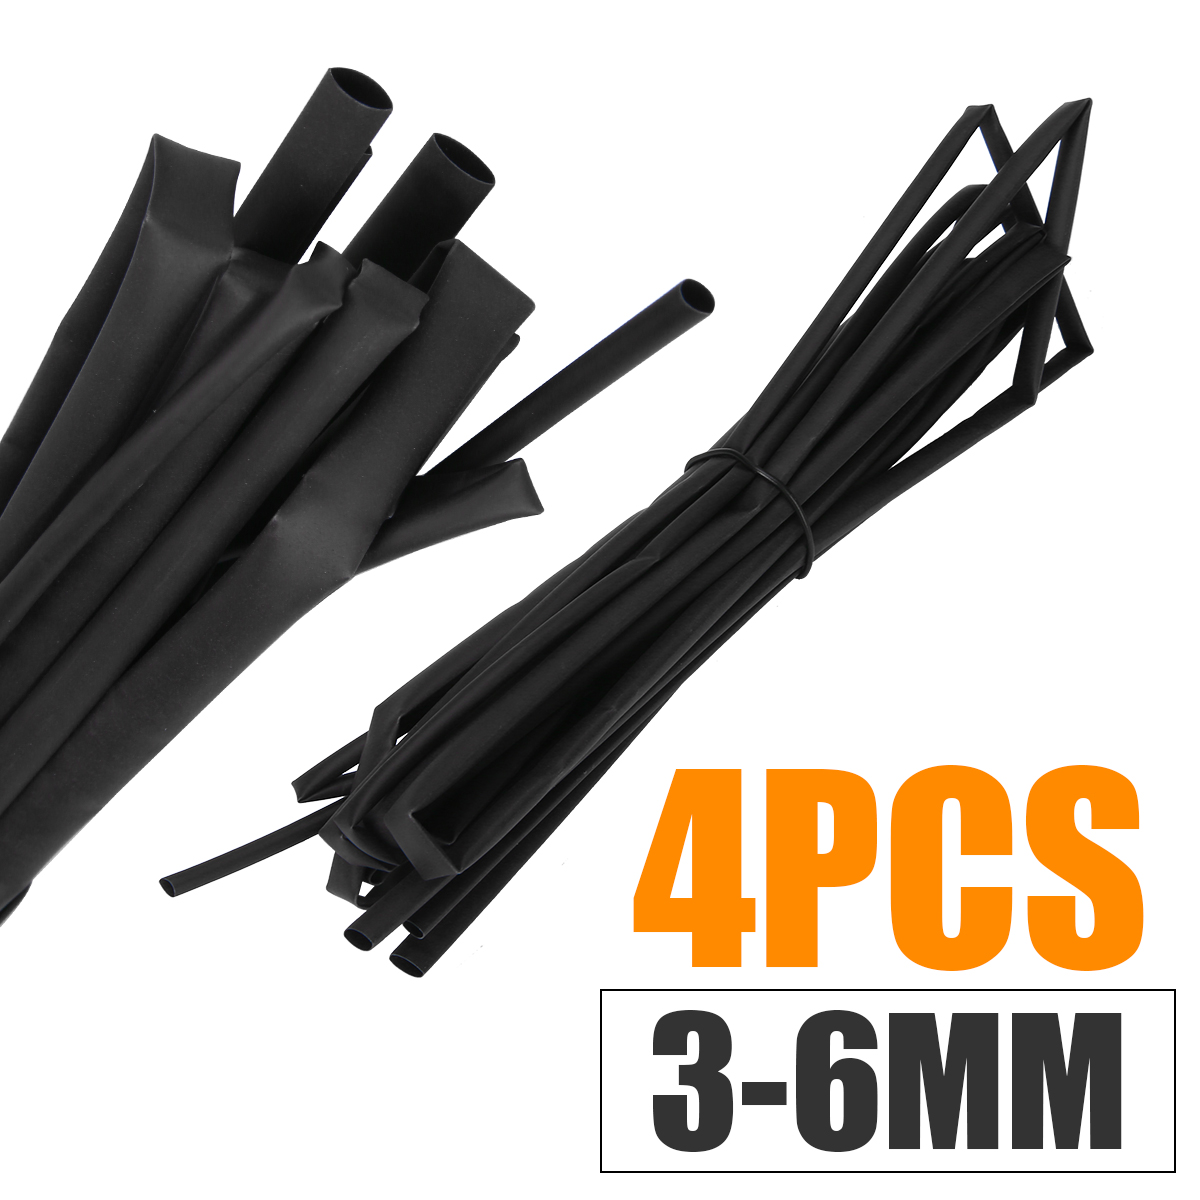 4*1 Meter Lenghts Heat Shrinking Tubing Tubes 3mm 4mm 5mm 6mm Replacement Kit